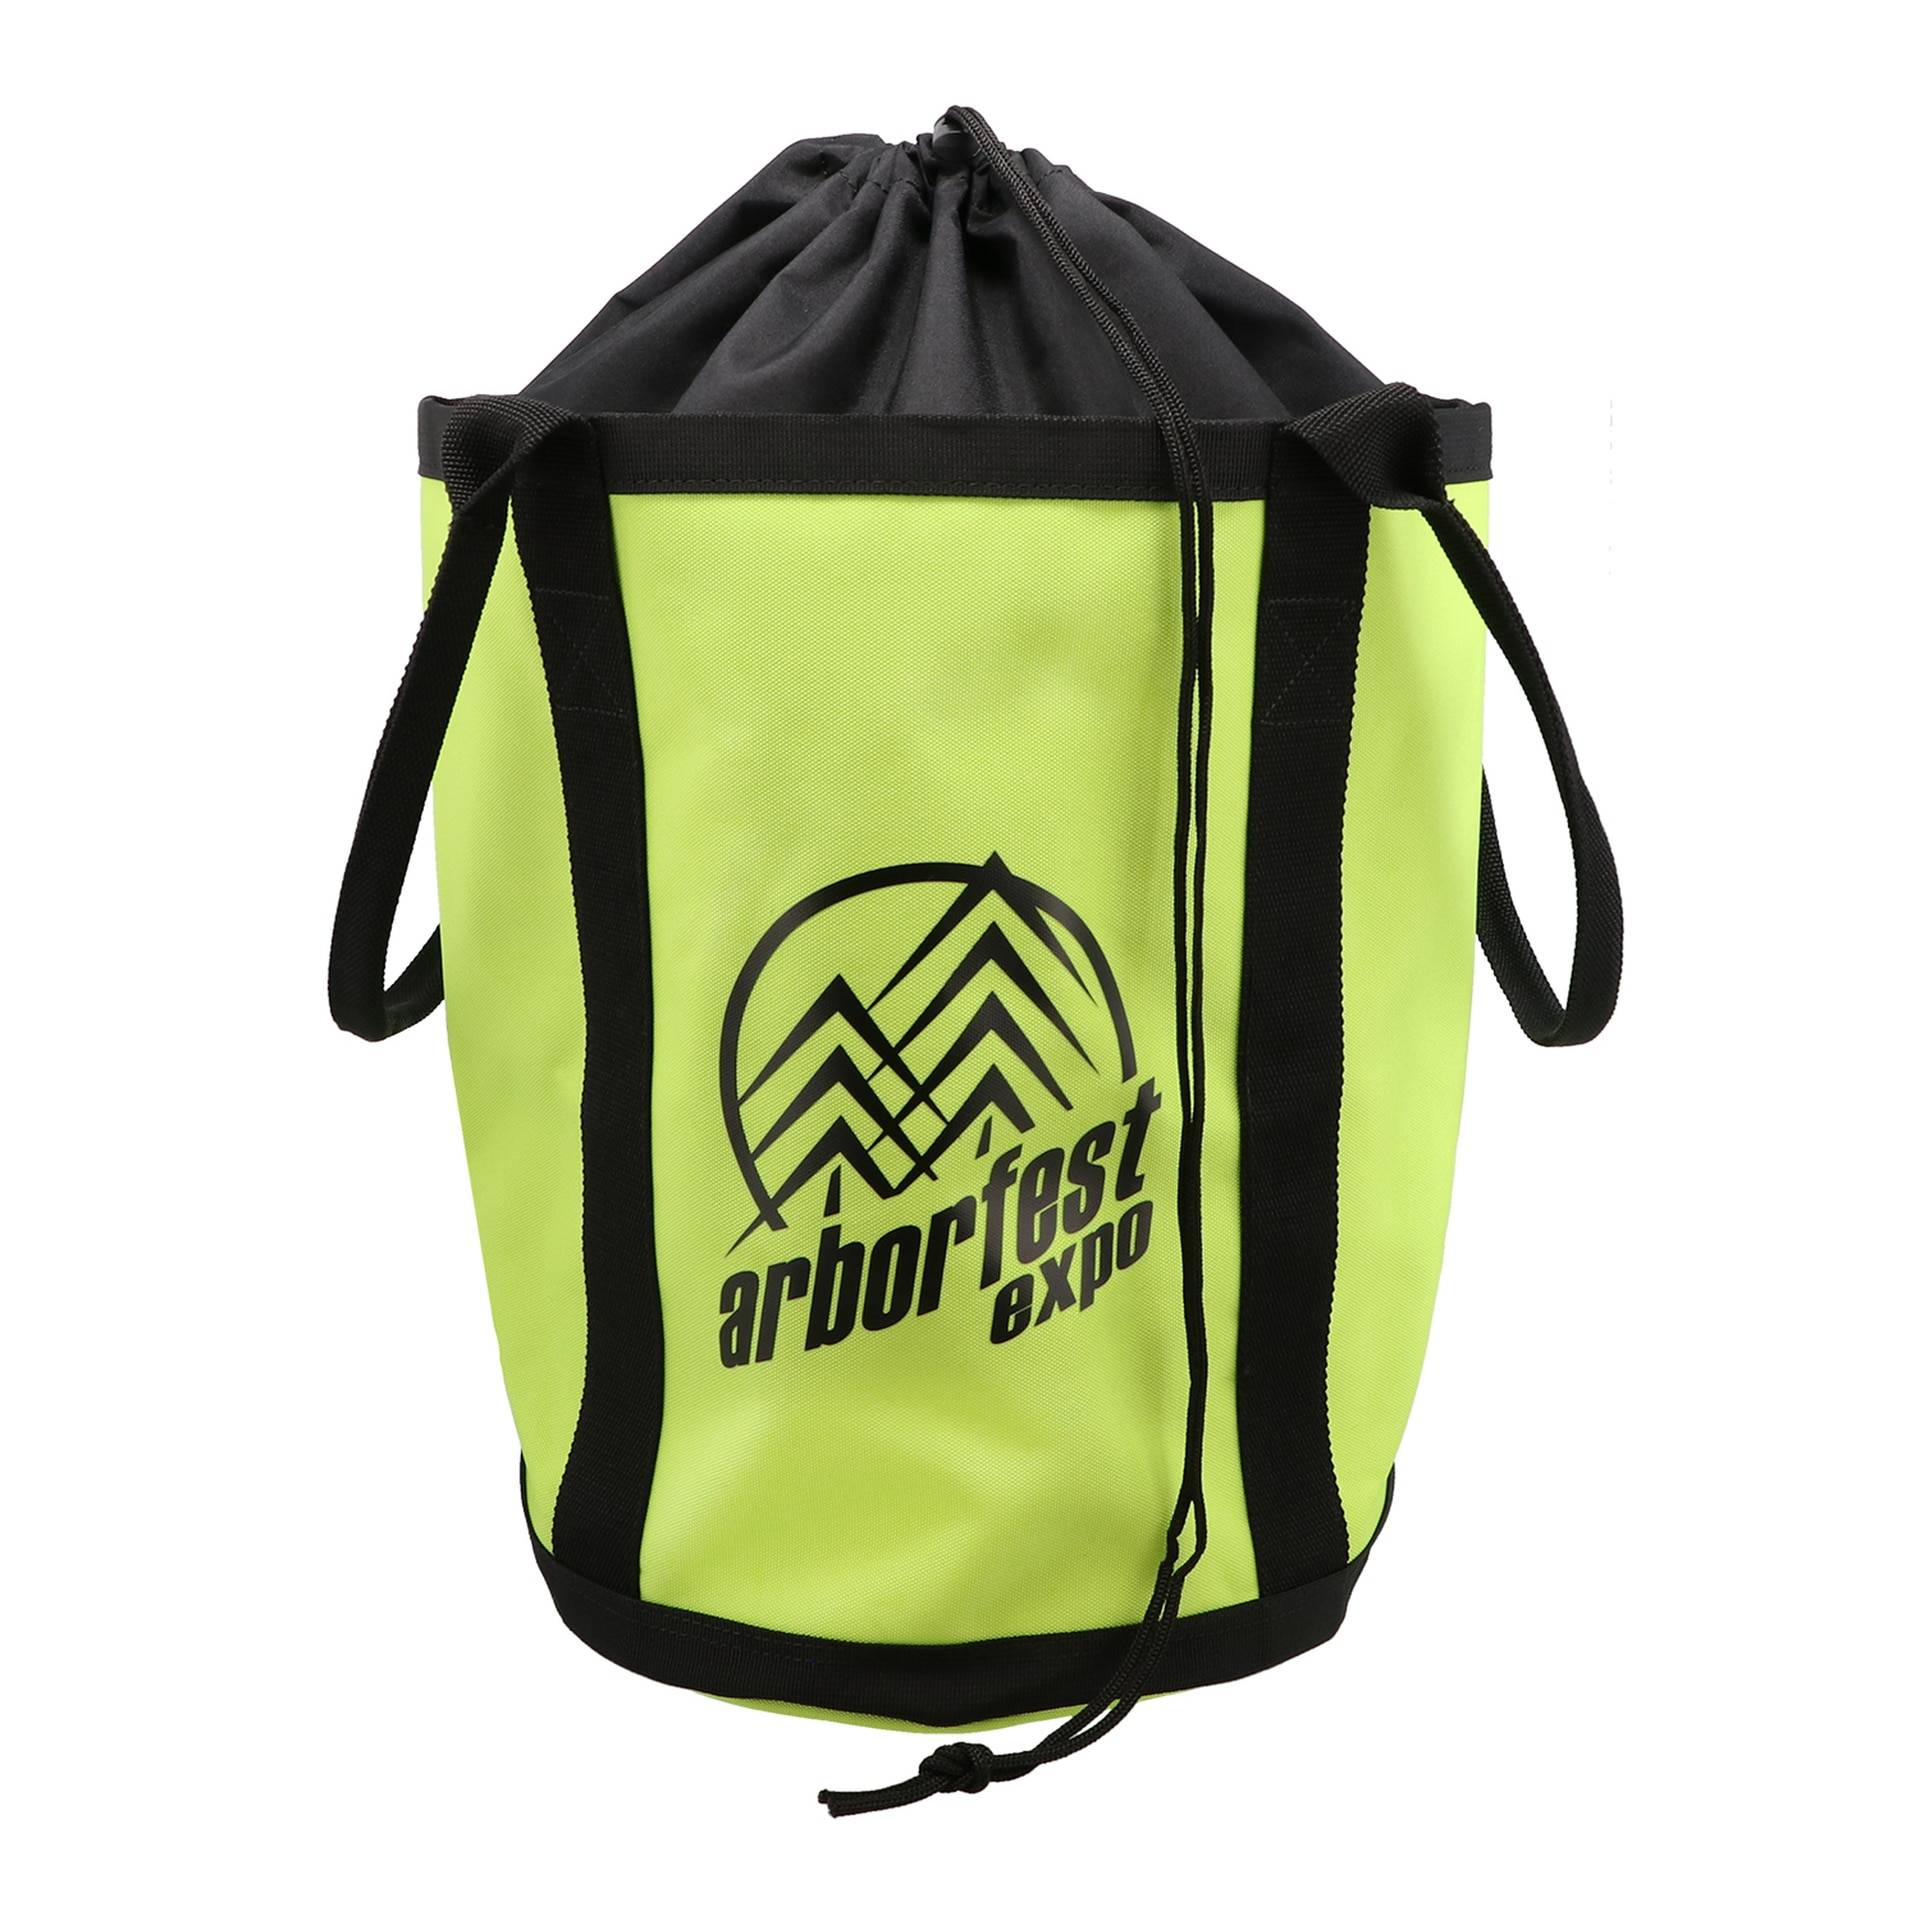 image of Arborfest Expo Simple Rope Bag